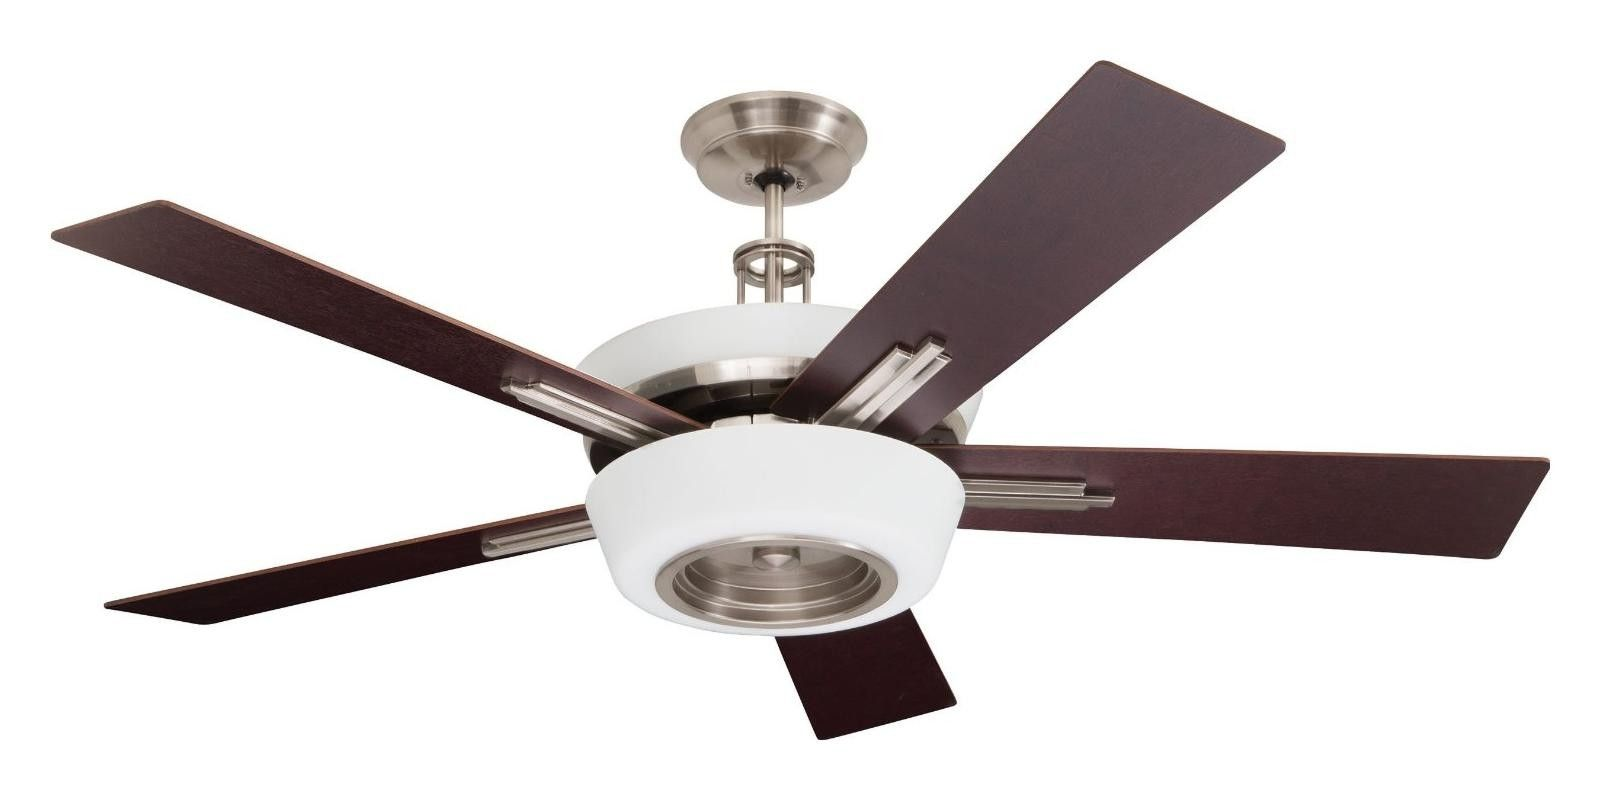 Brightest Light Bulbs For Ceiling Fans